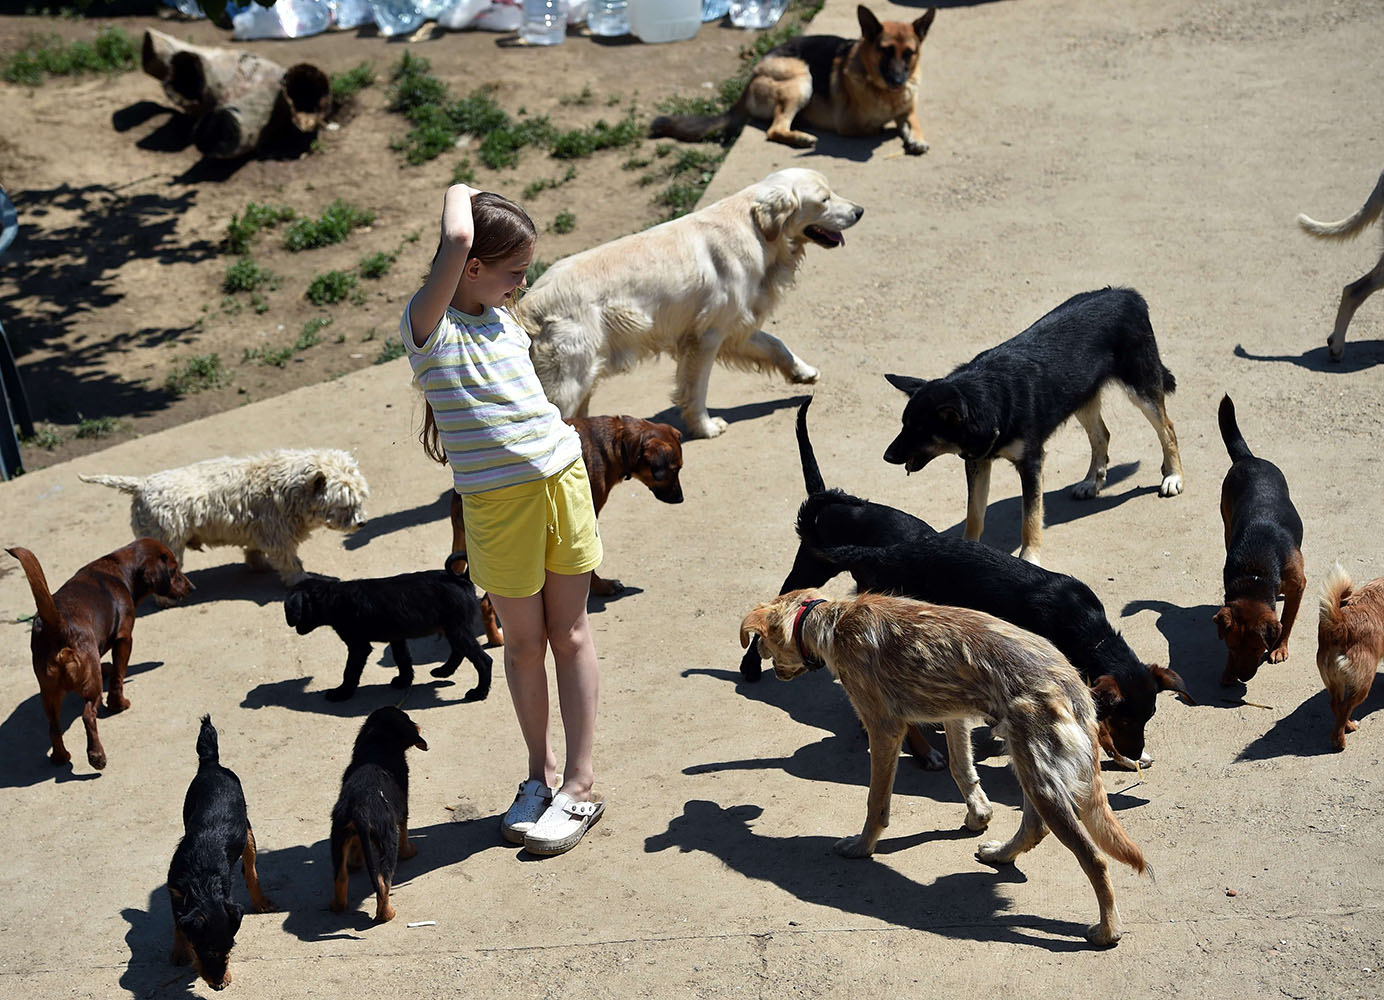 A child plays with rescued dogs in an animal shelter in the village of Drazevac near the flooded Serbian town of Obrenovac, on May 21, 2014.